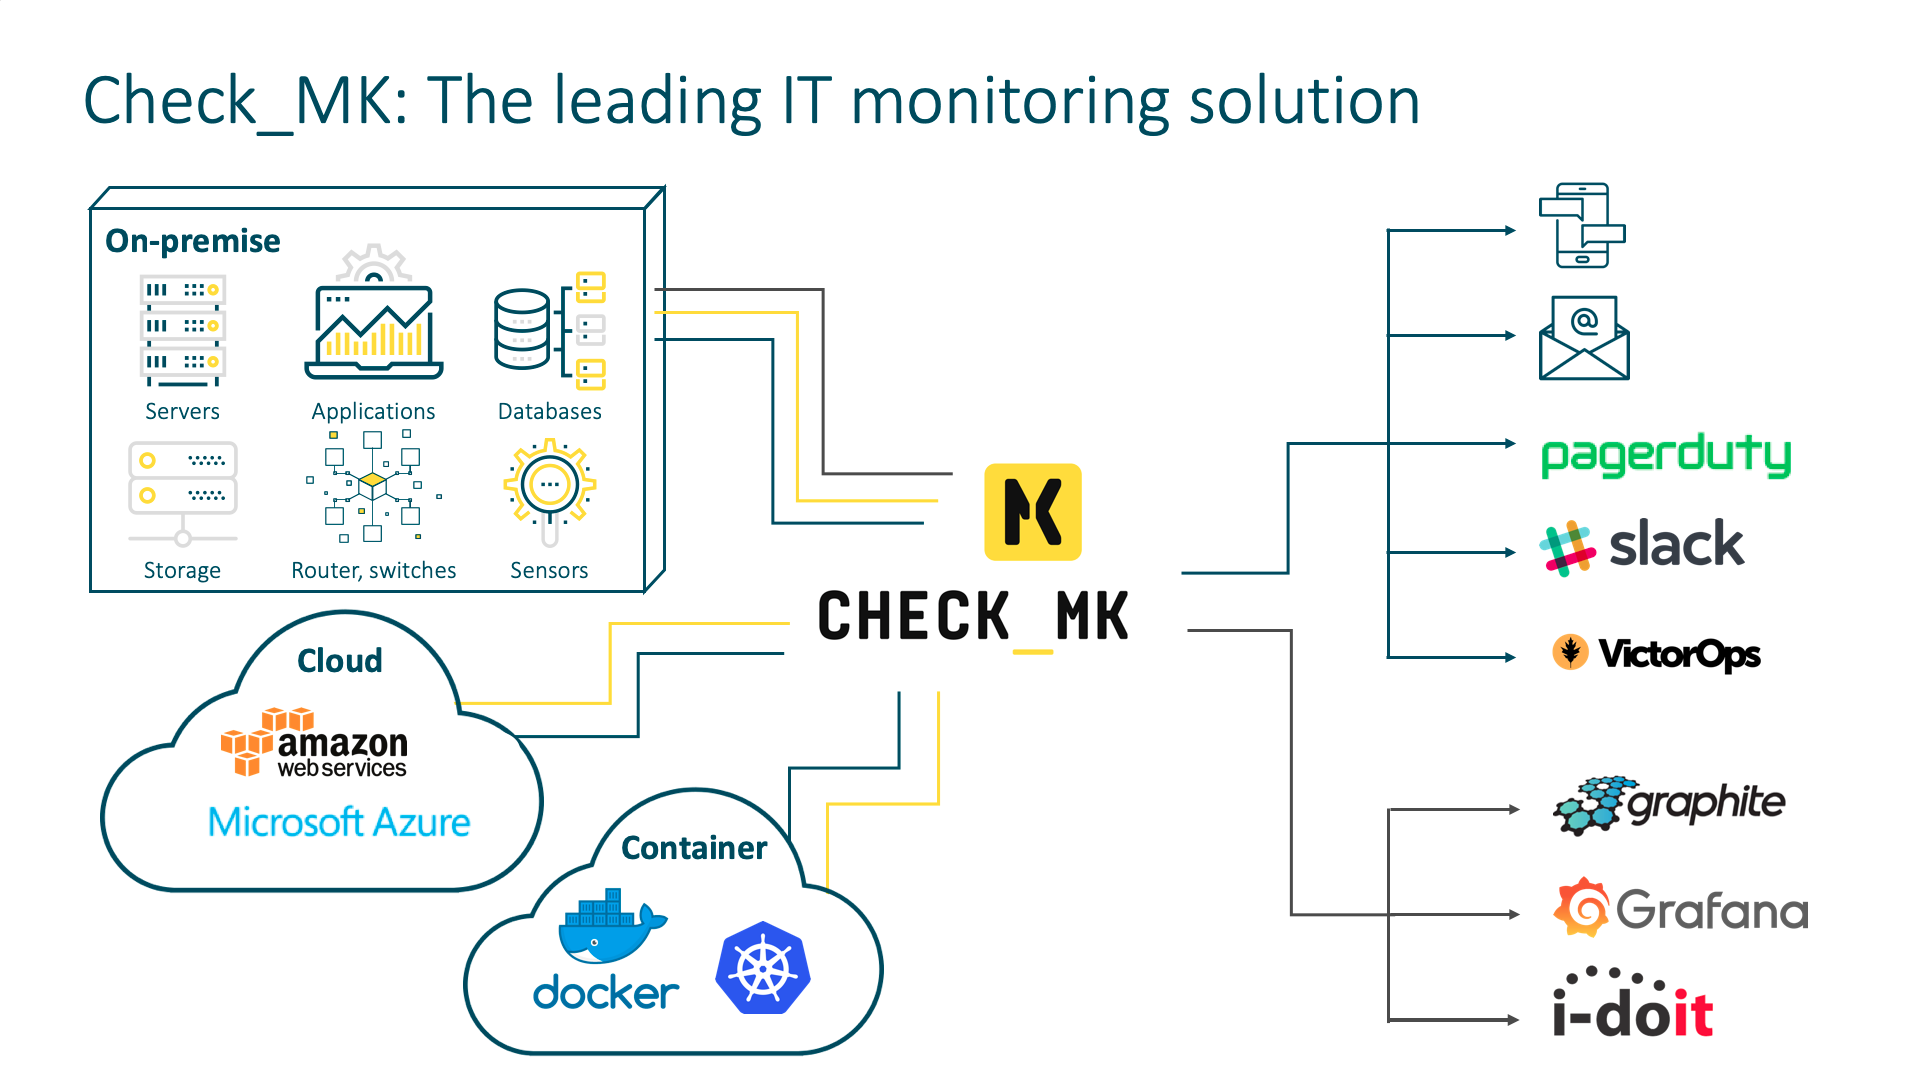 Check_MK monitoring